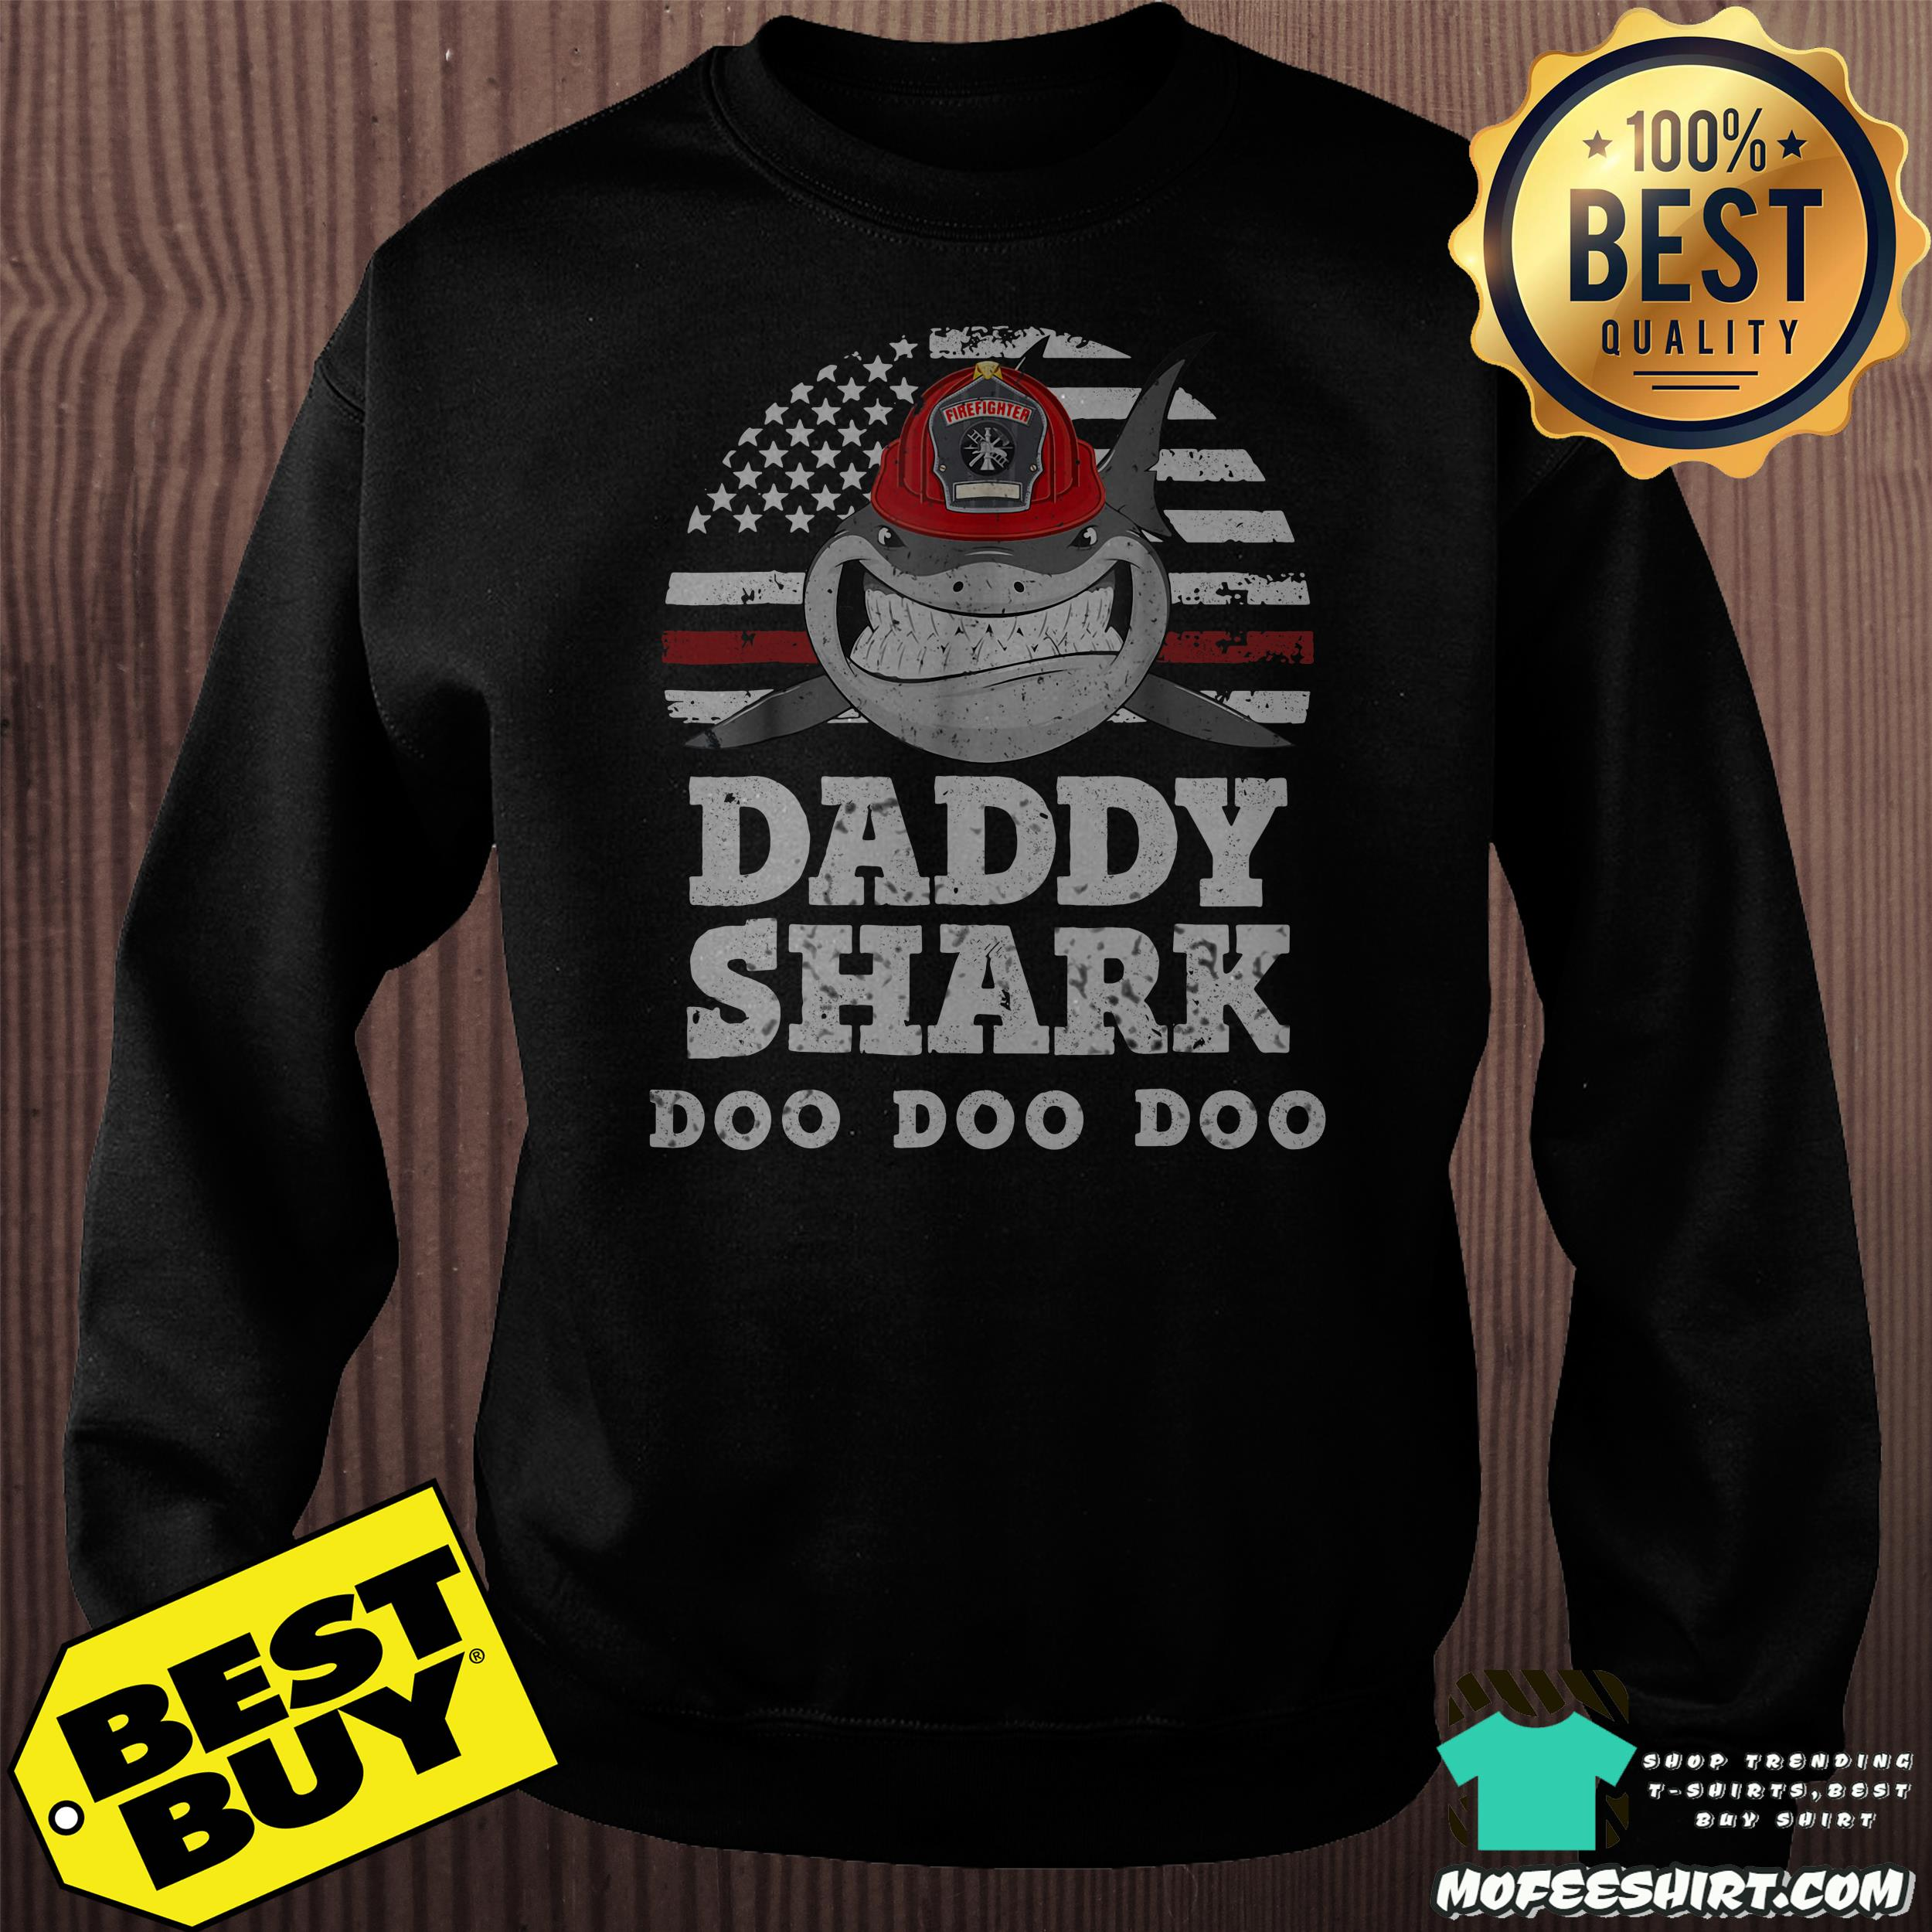 firefighter daddy shark doo doo doo vintage sweatshirt - Firefighter daddy shark doo doo doo vintage shirt